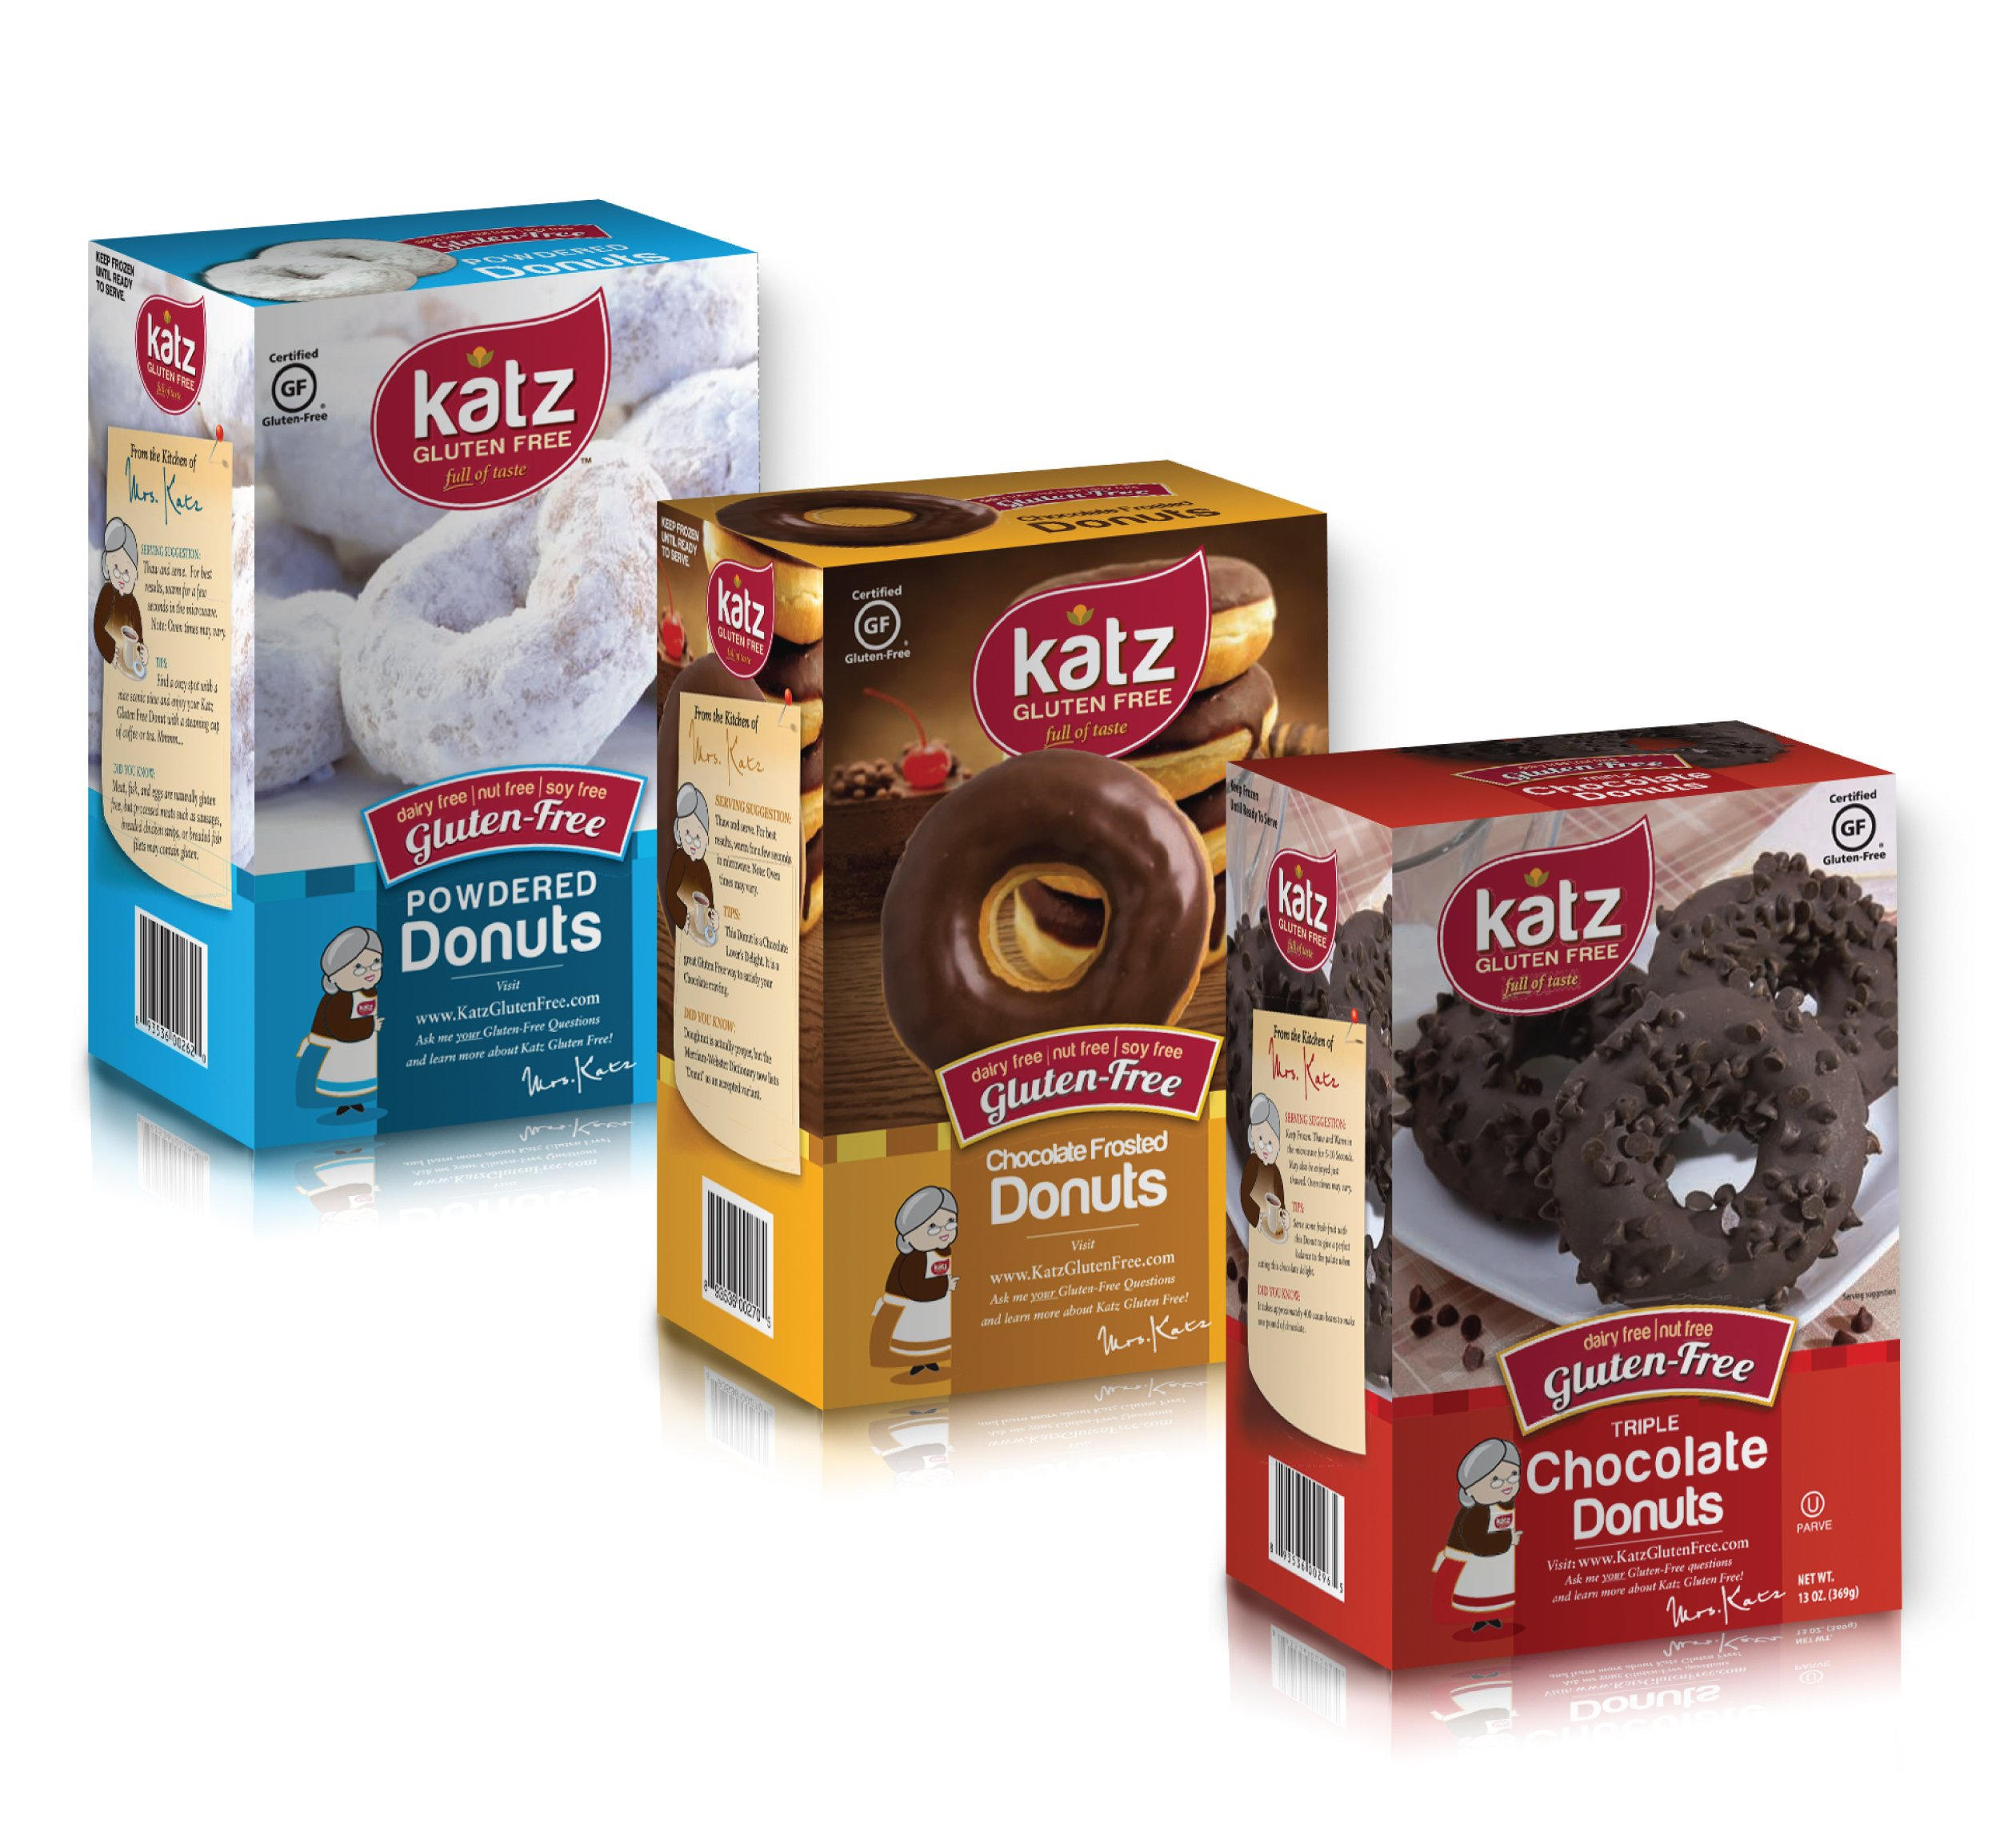 Katz Gluten Free Donut Variety Pack   1 Powdered, 1 Chocolate Frosted, 1 Triple Chocolate   Dairy, Nut, Soy and Gluten Free   Kosher (1 Pack of each) by Katz Gluten Free